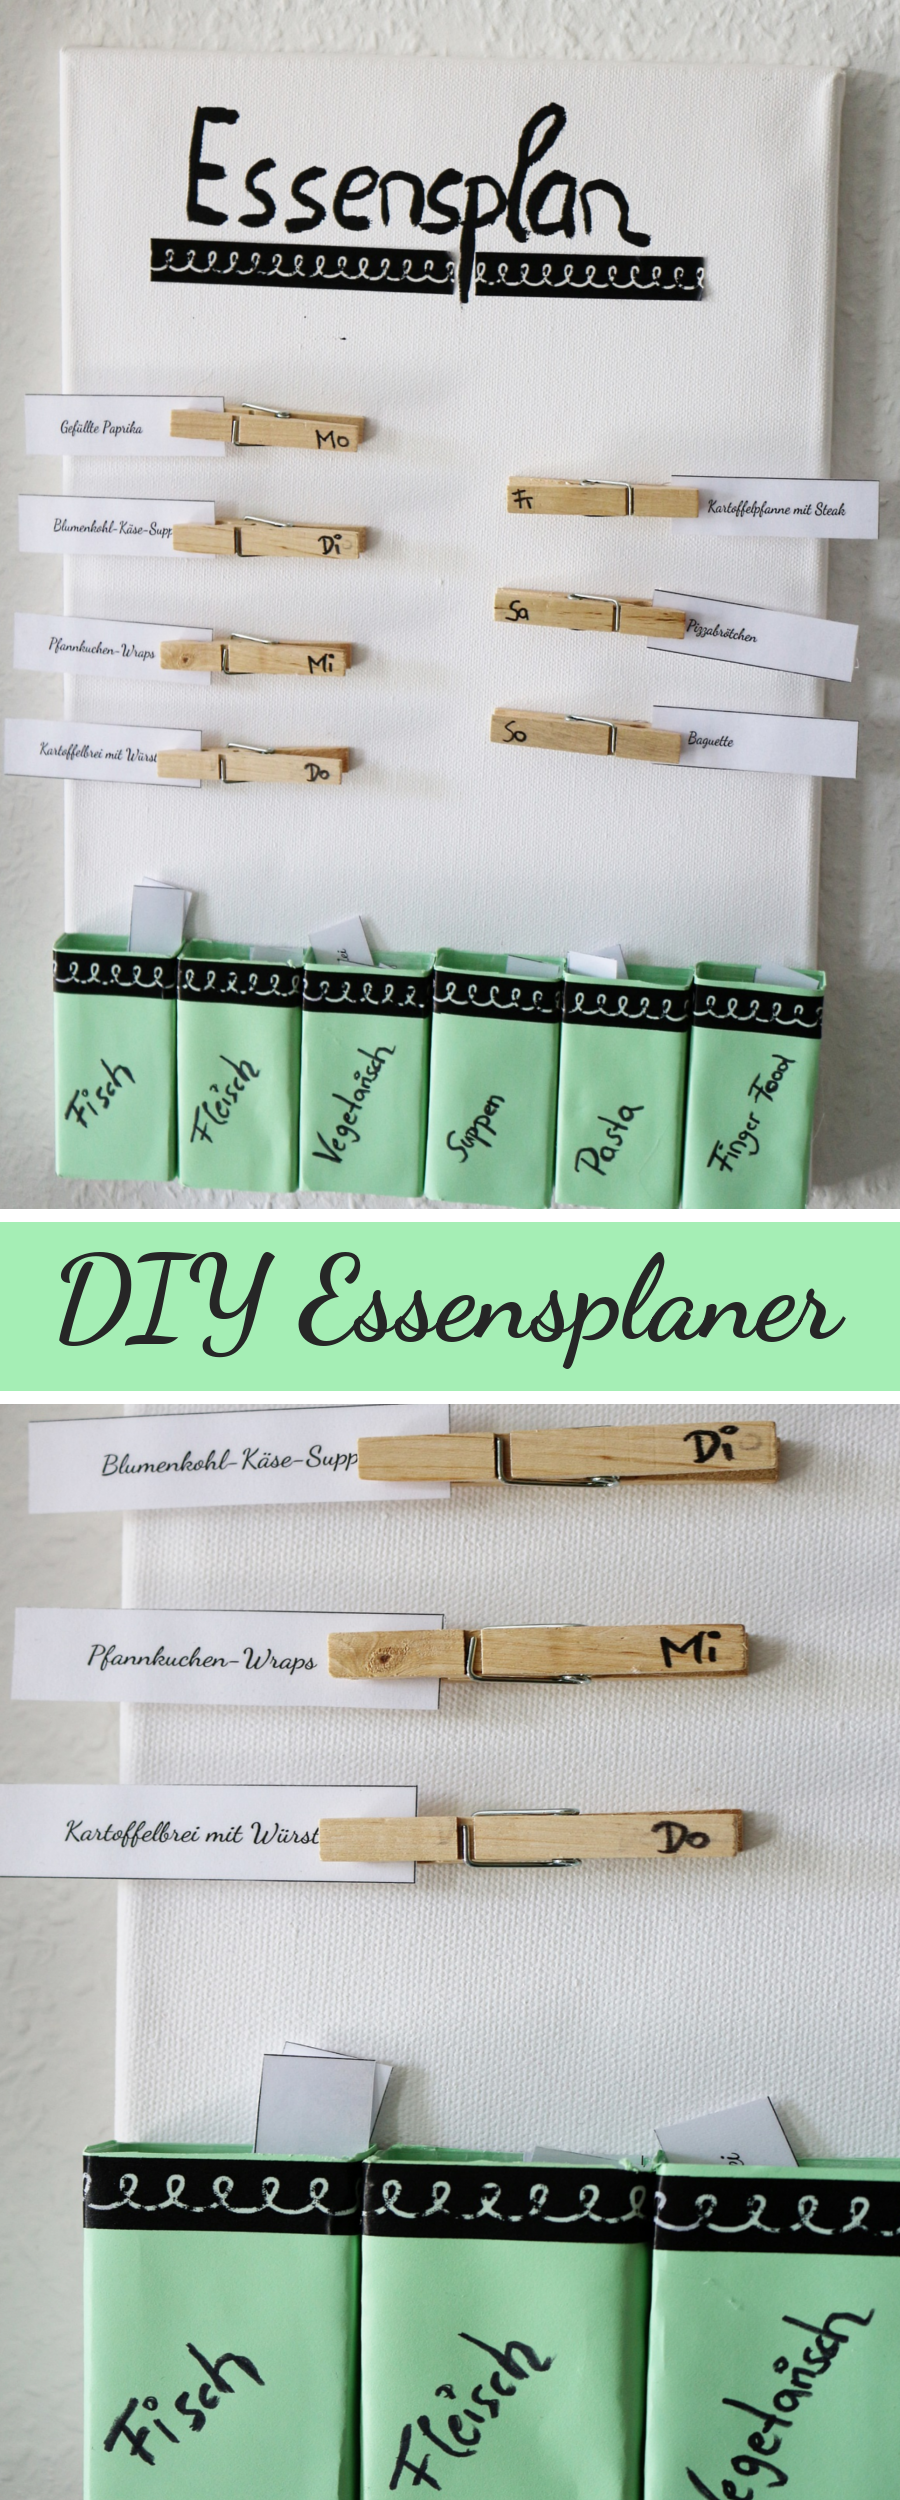 Photo of DIY idea: make meal planner yourself + video instructions